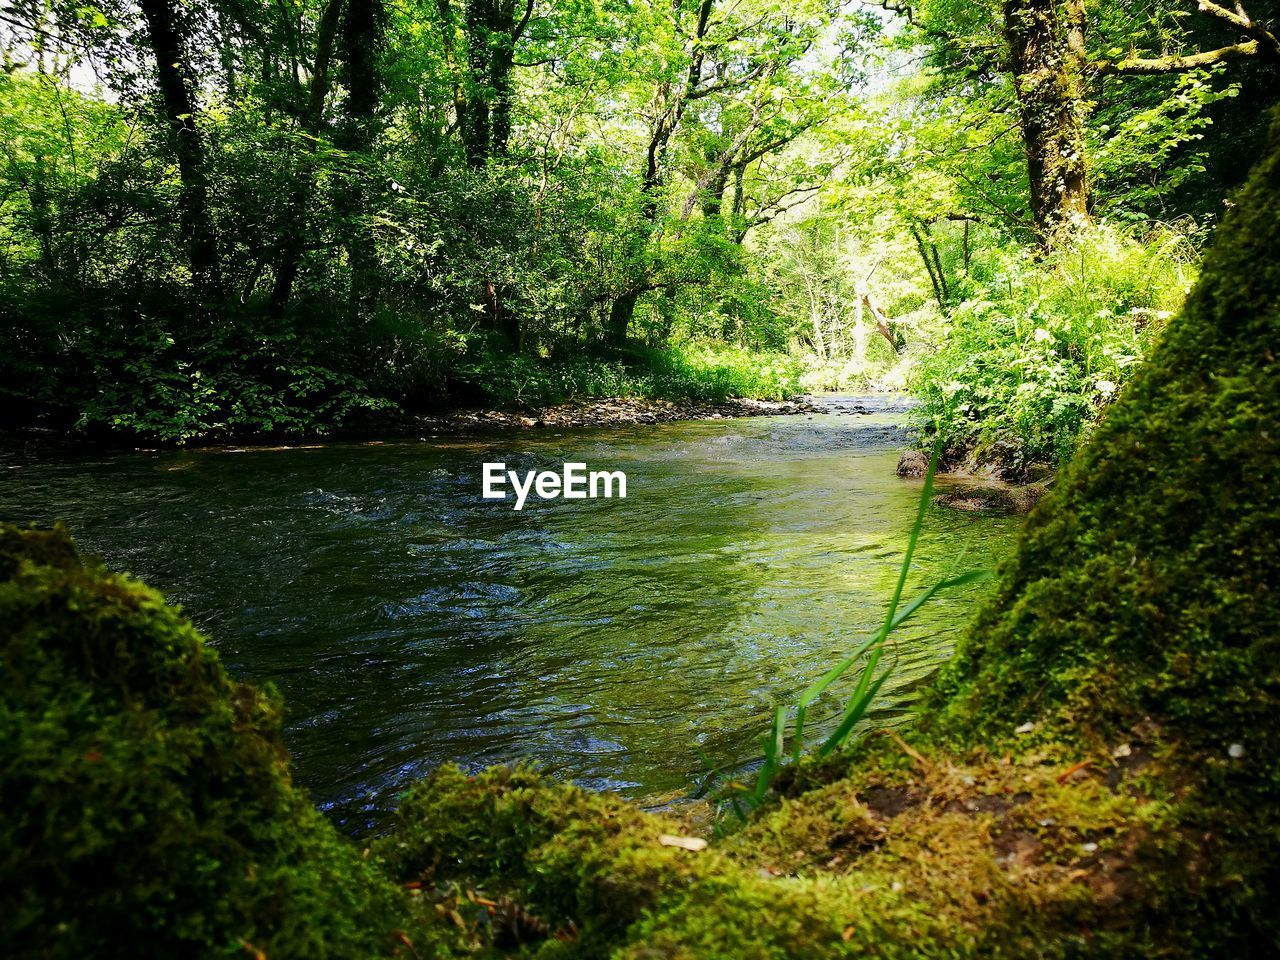 tree, forest, plant, land, water, beauty in nature, nature, tranquility, growth, scenics - nature, green color, no people, tranquil scene, woodland, river, foliage, day, lush foliage, outdoors, flowing, flowing water, rainforest